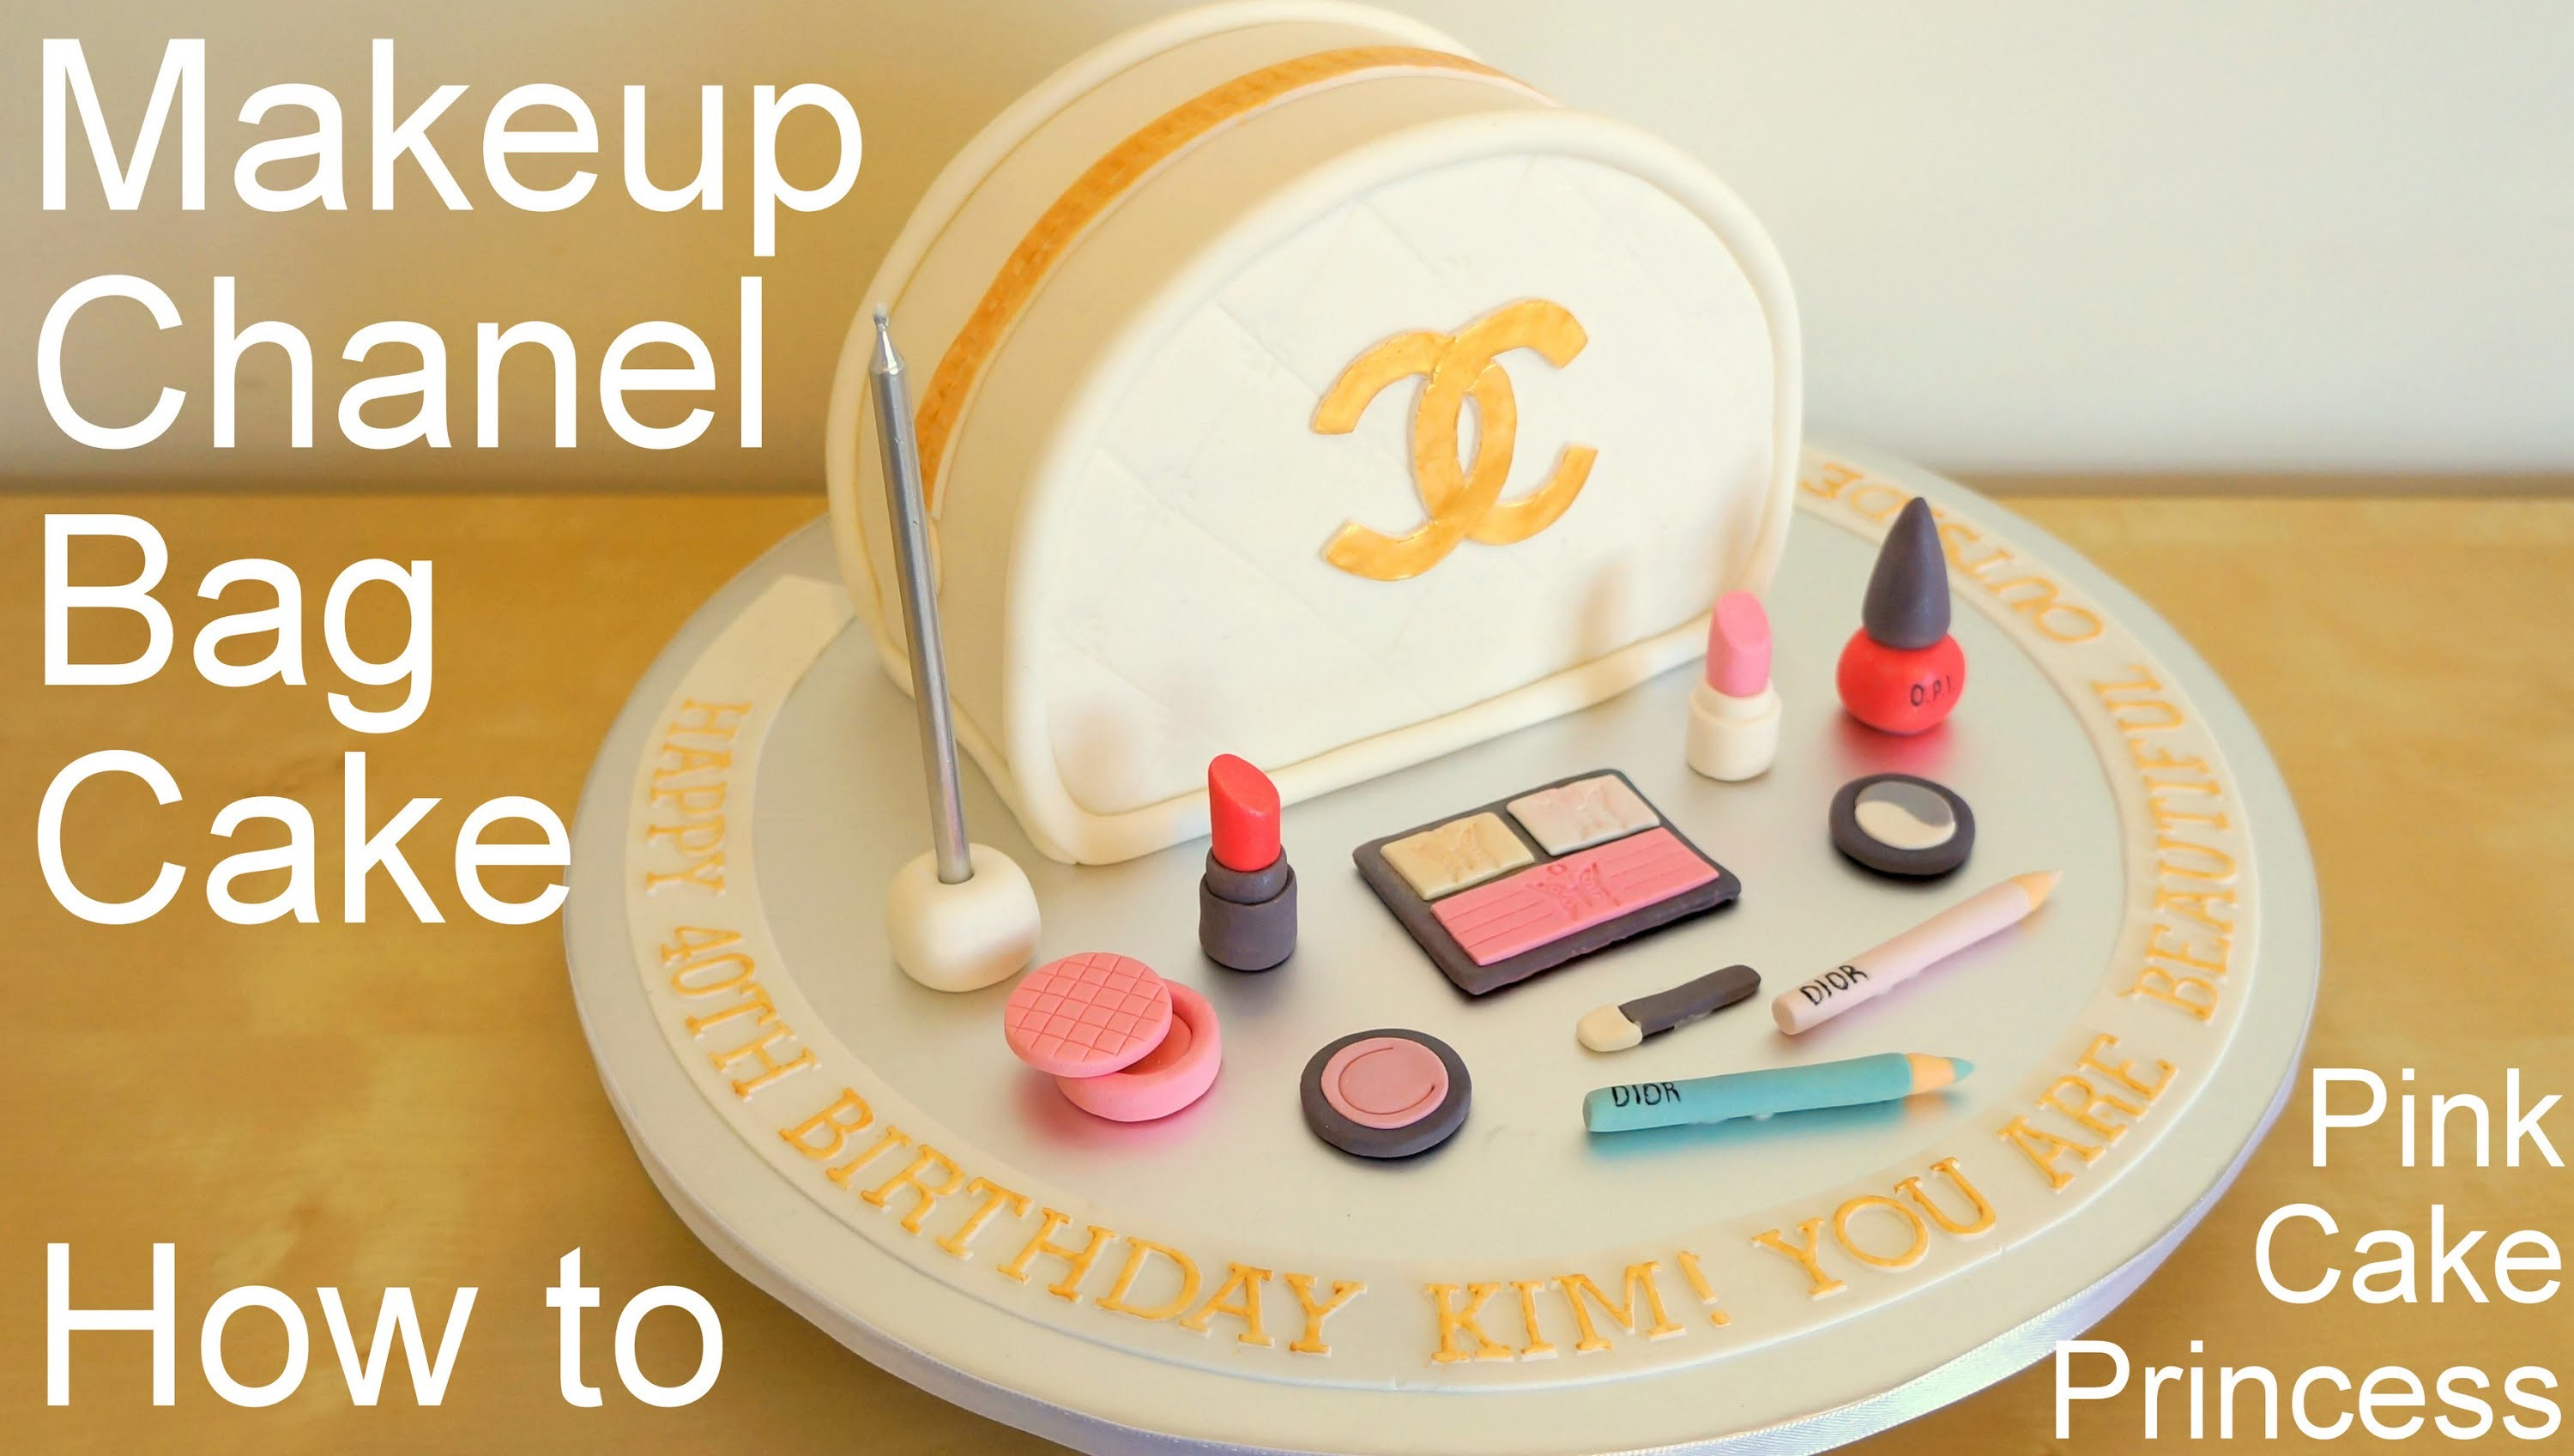 Chanel Bag Makeup Cake for Mother's Day How to by Pink Cake Princess